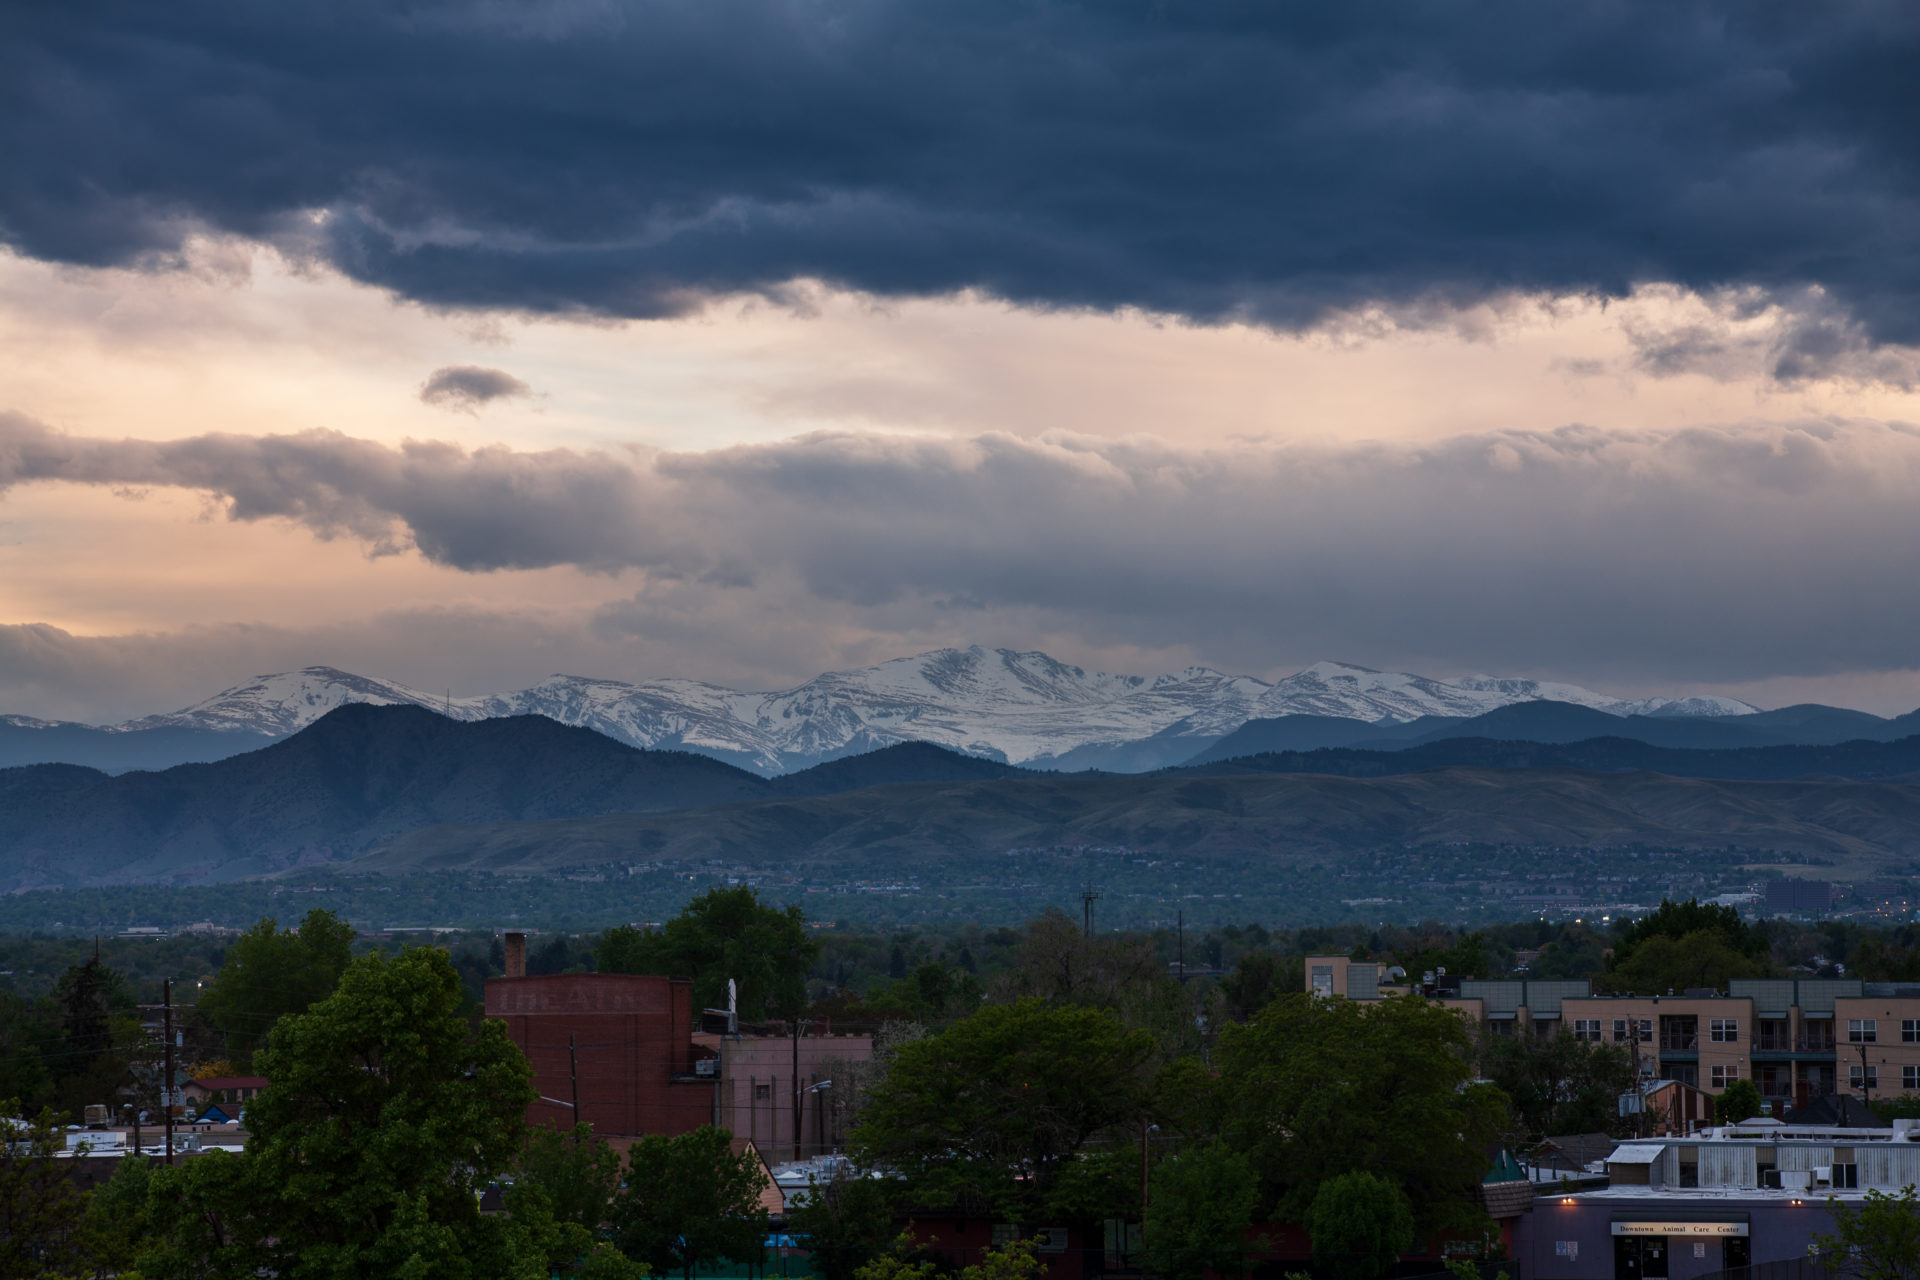 Mount Evans sunset - May 27, 2011